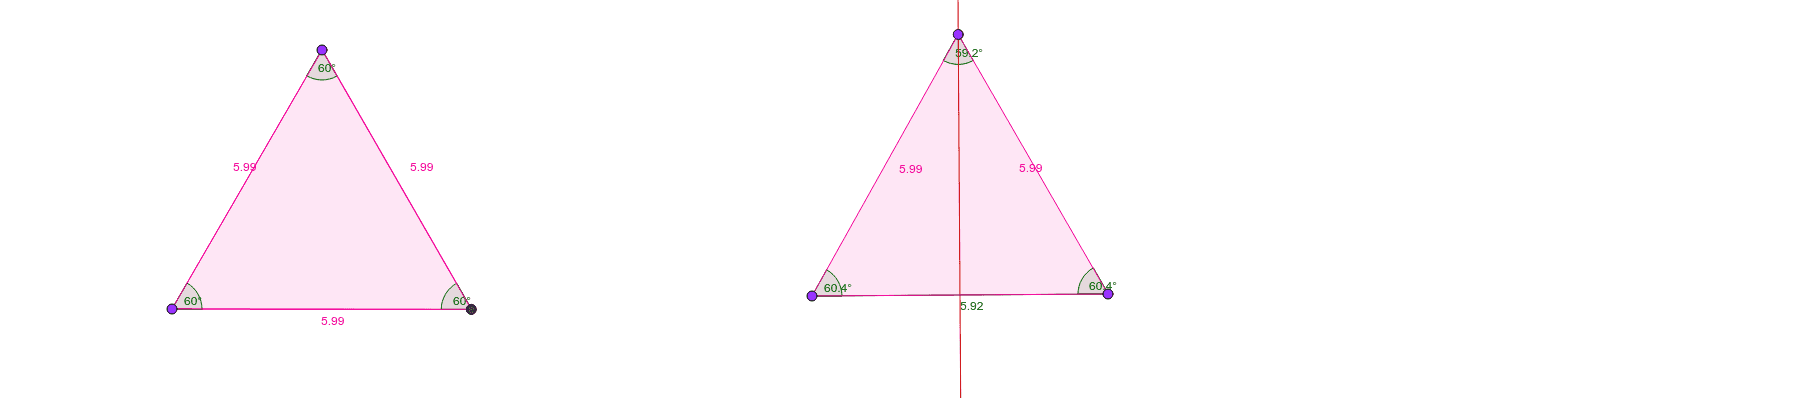 Triangles in GeoGebra